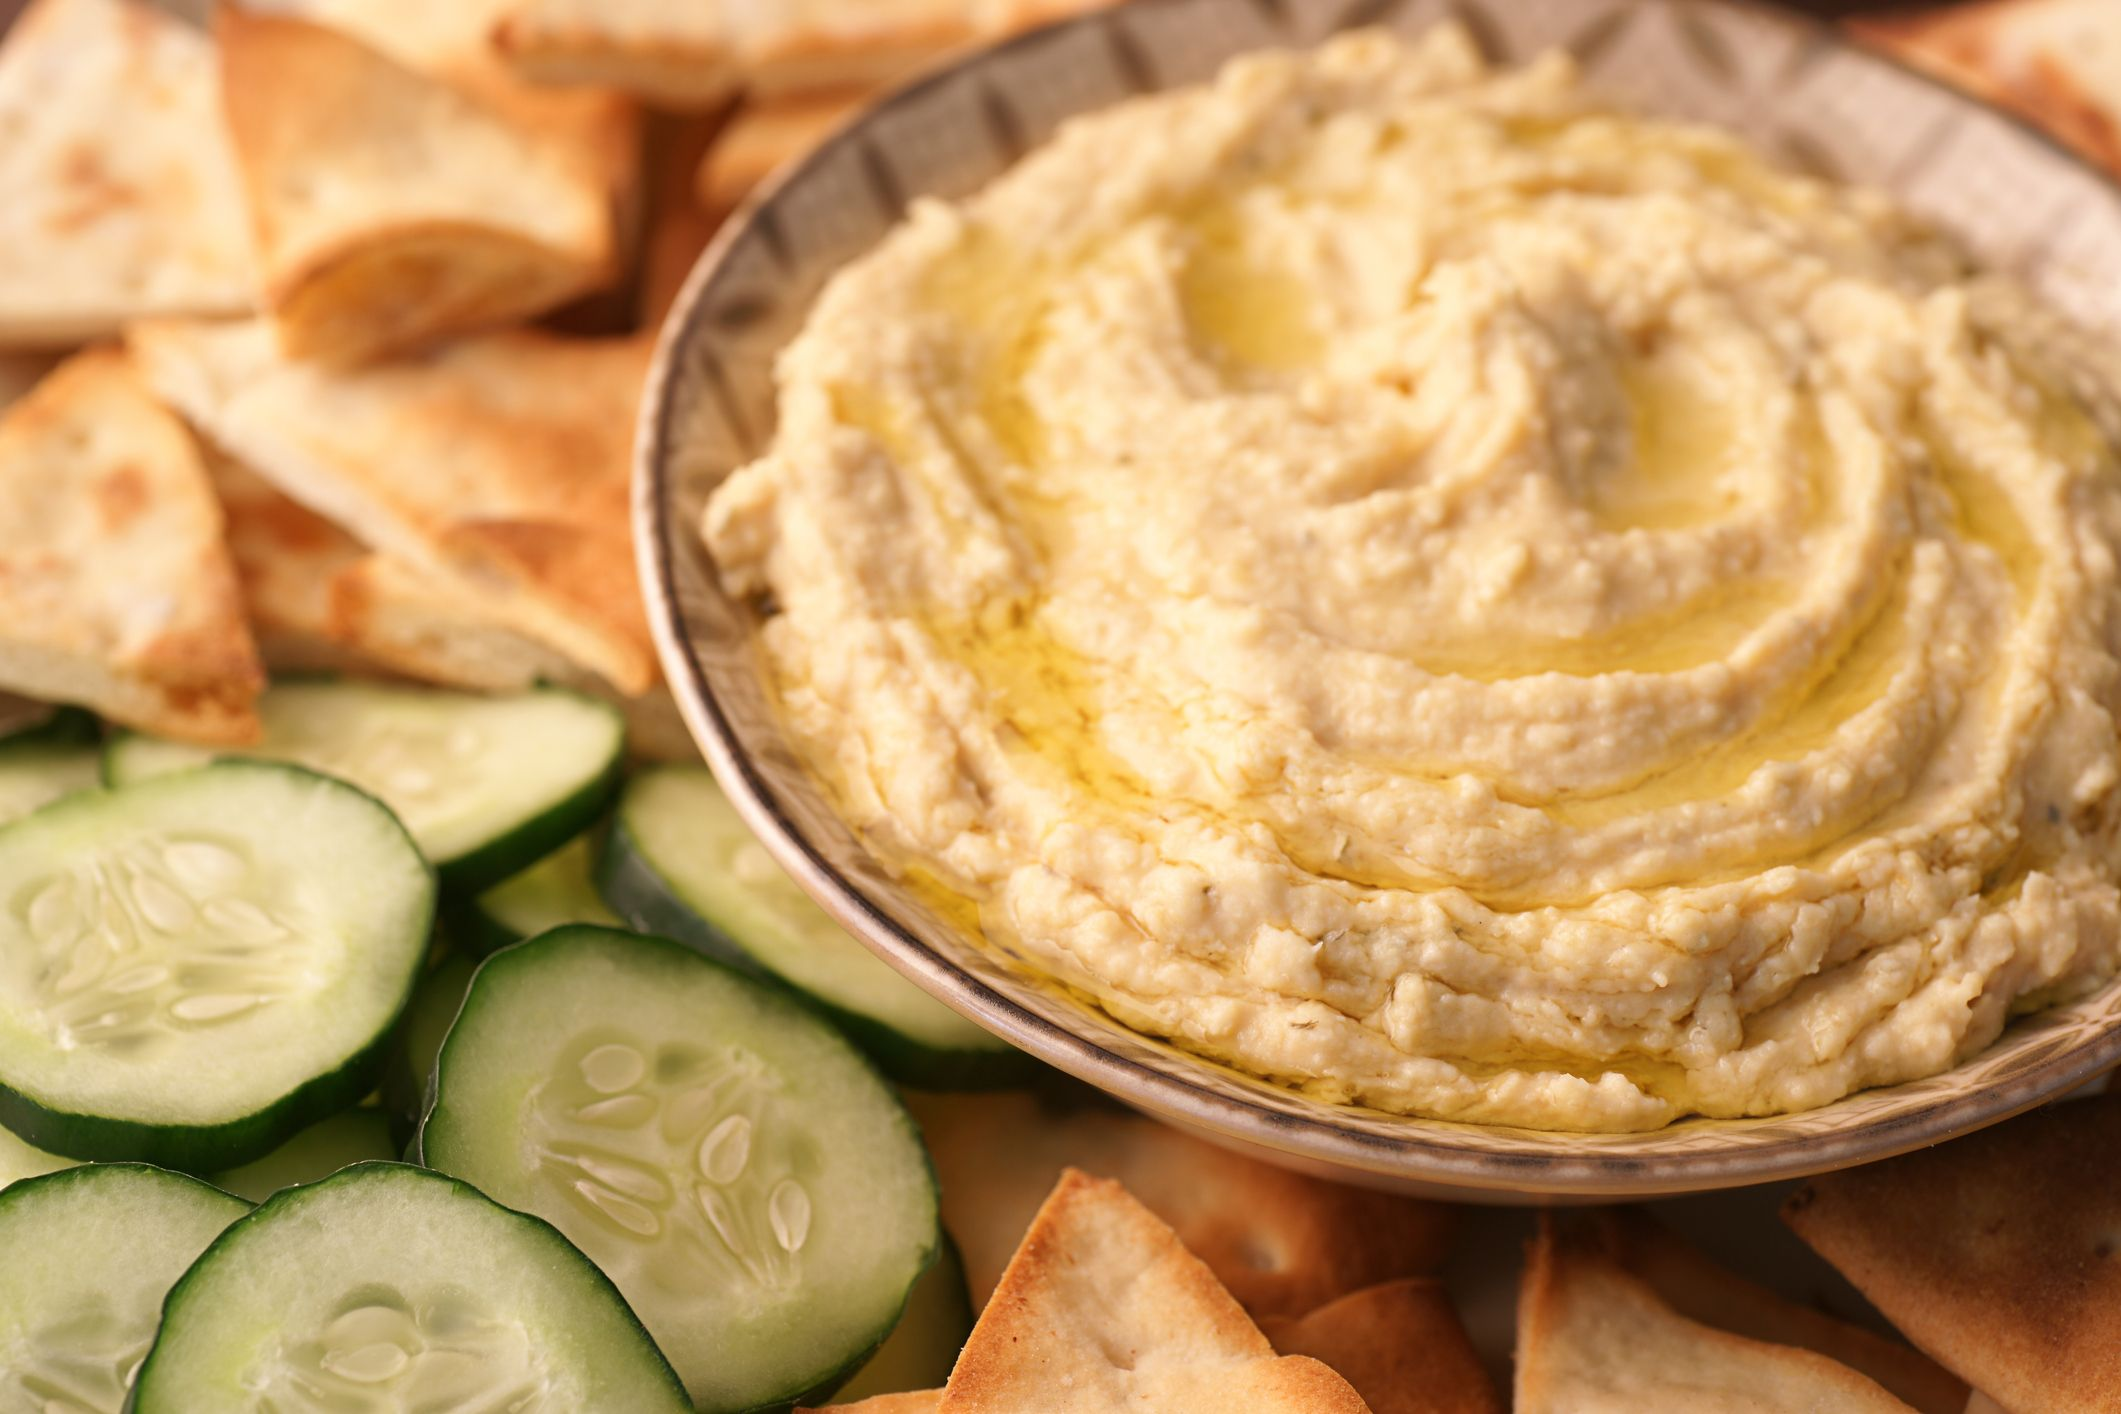 Is Hummus Healthy? We Asked the Experts